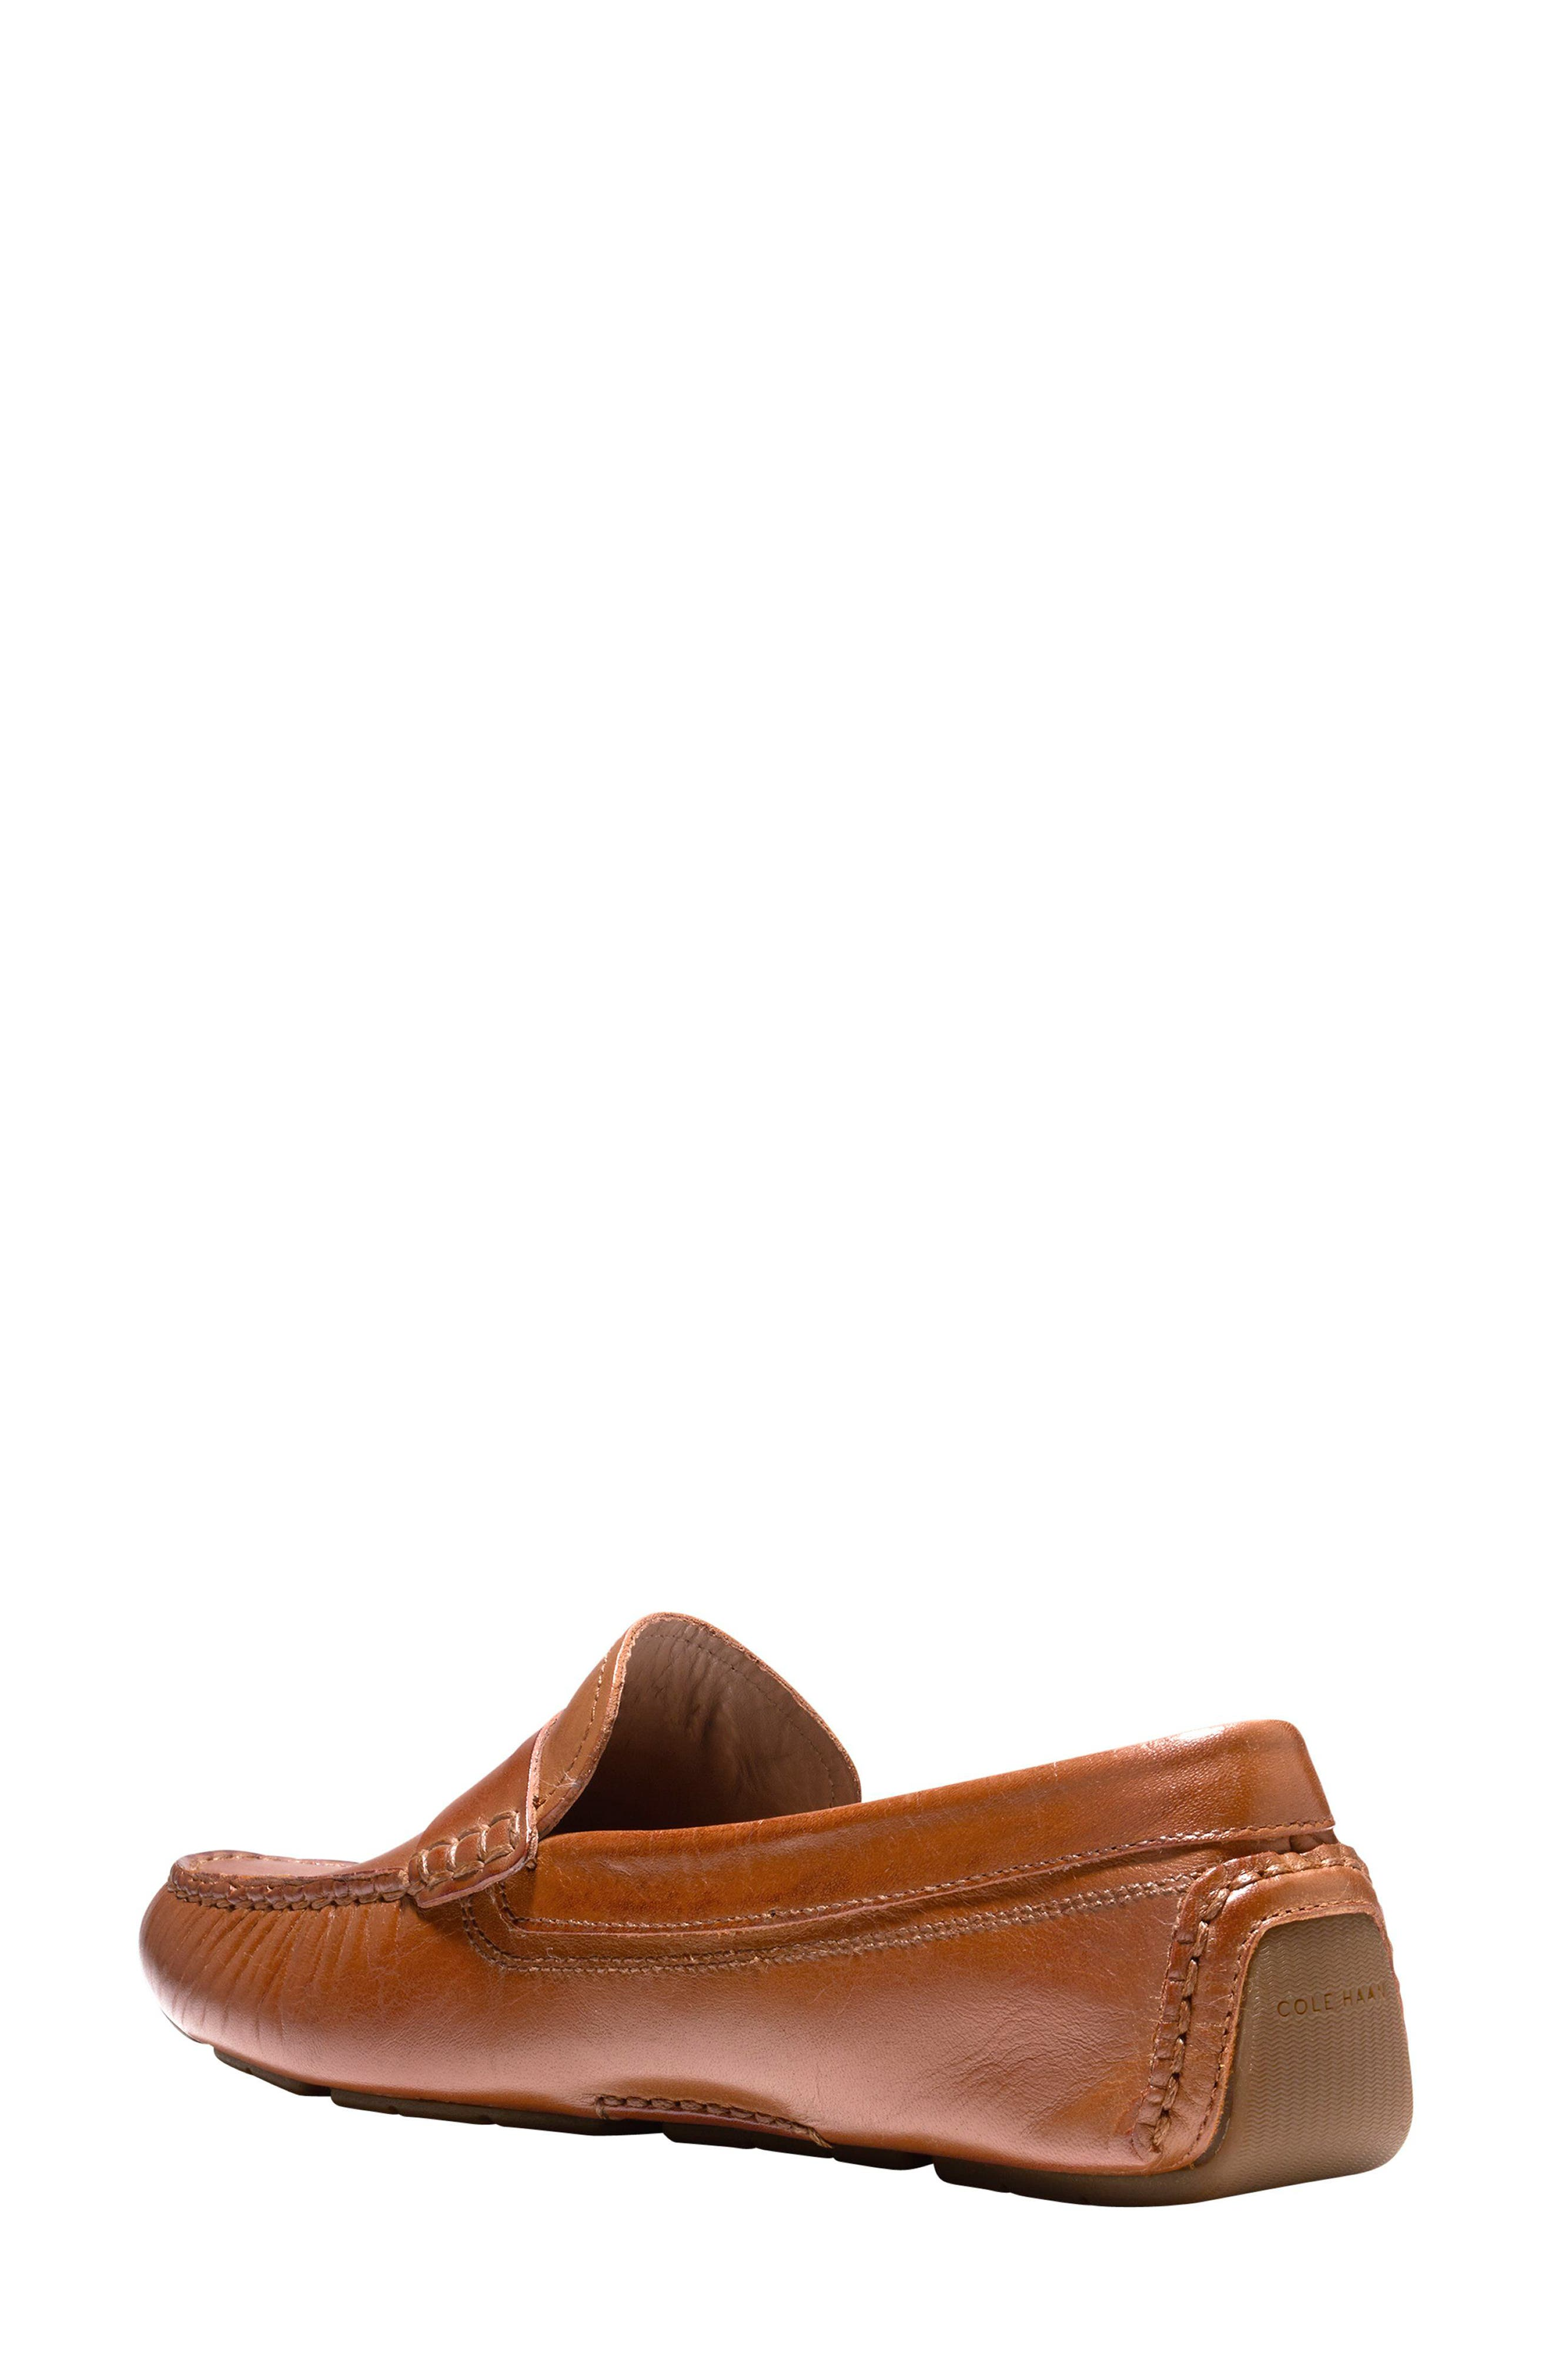 Rodeo Penny Driving Loafer,                             Alternate thumbnail 2, color,                             200